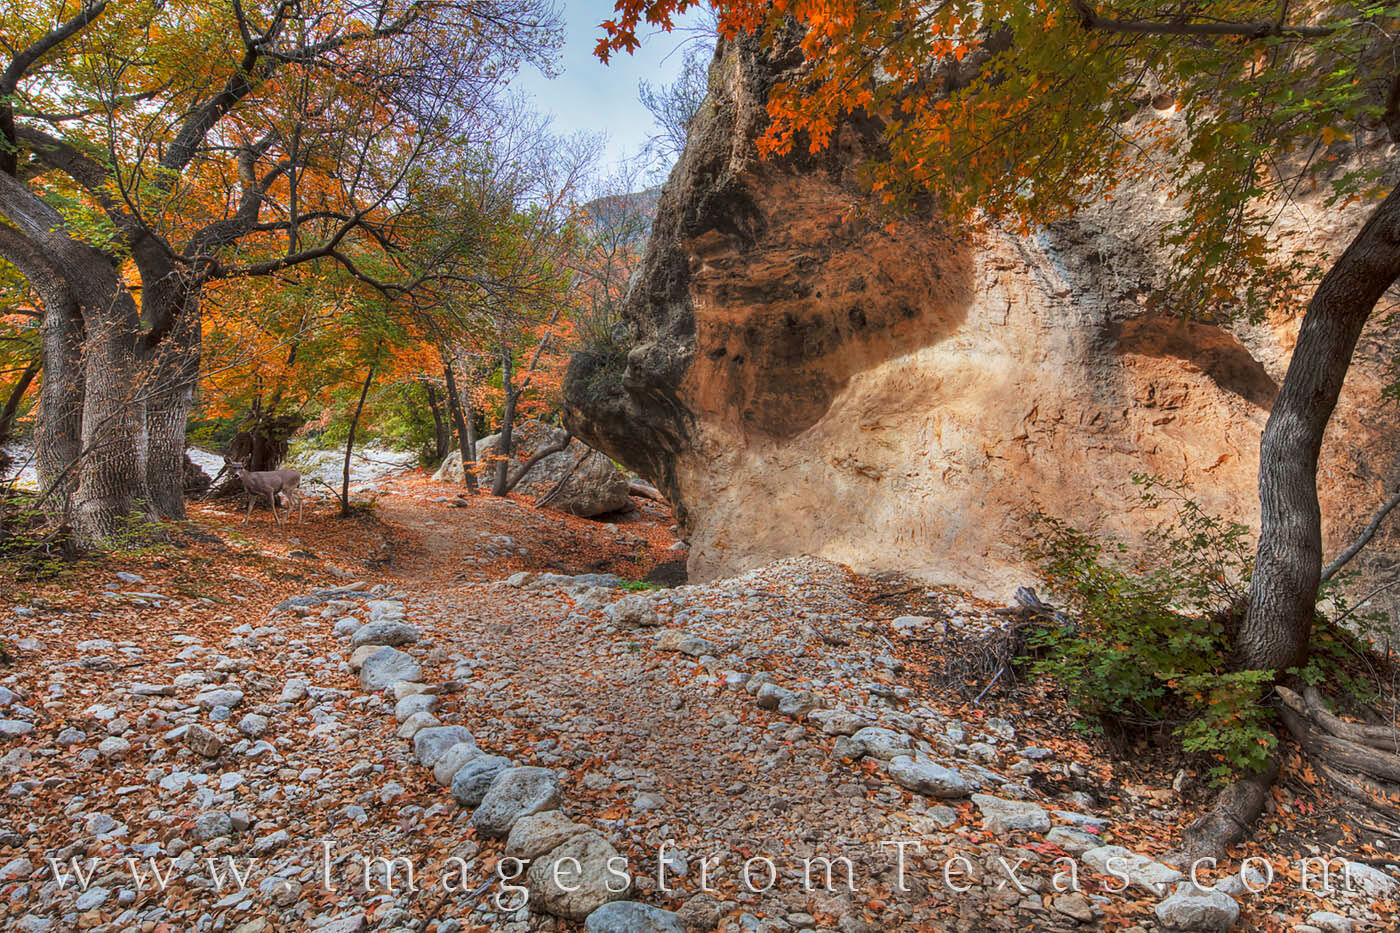 mckittrick canyon, grotto, guadalupe mountains, guadalupe mountains national park, texas national park, west texas, fall colors, texas fall colors, photo